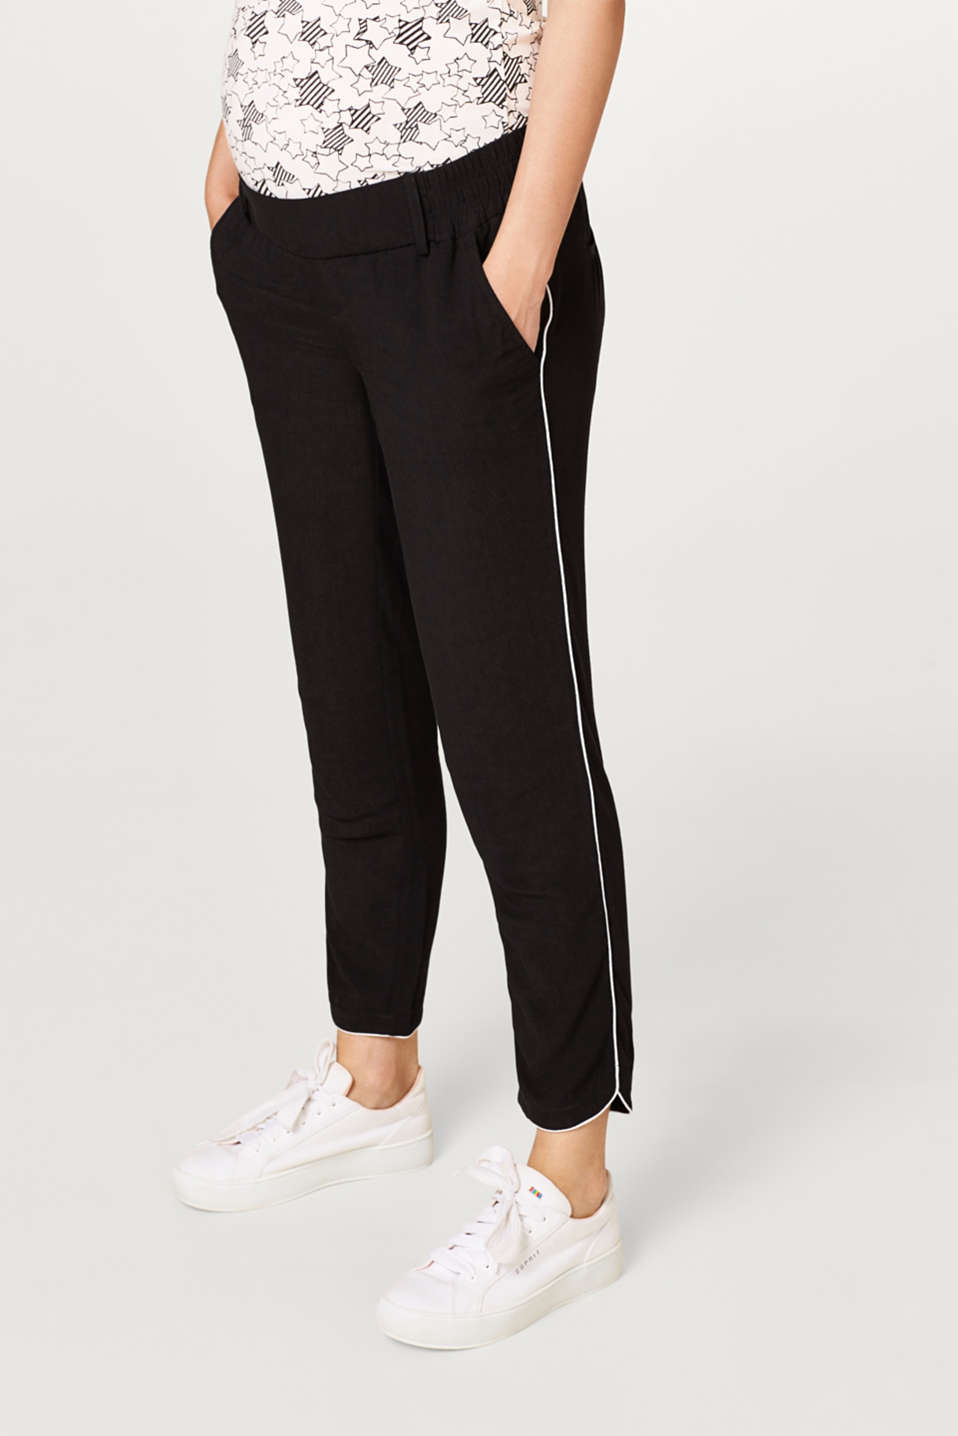 Esprit - Piped trousers with an under-bump waistband